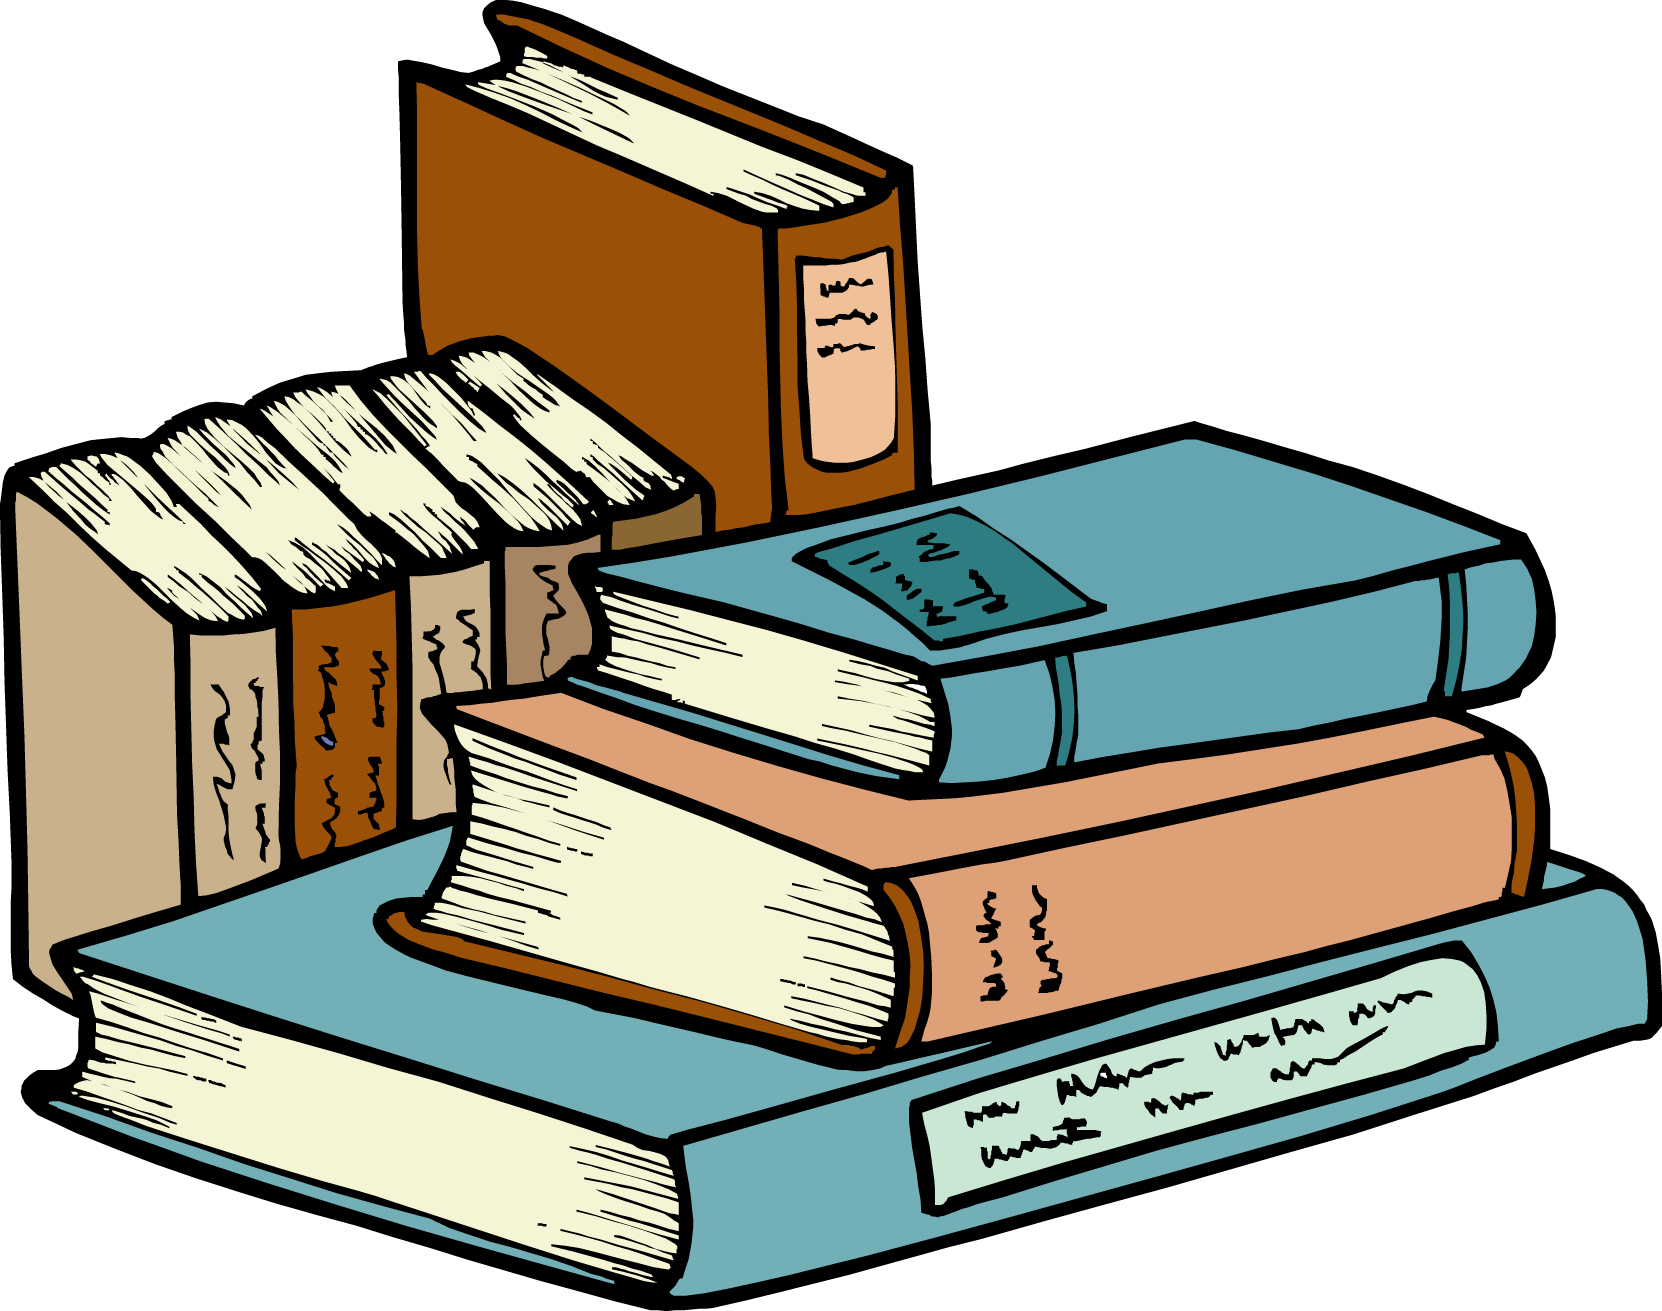 Books On Shelf Clipart | Clipart Panda - Free Clipart Images